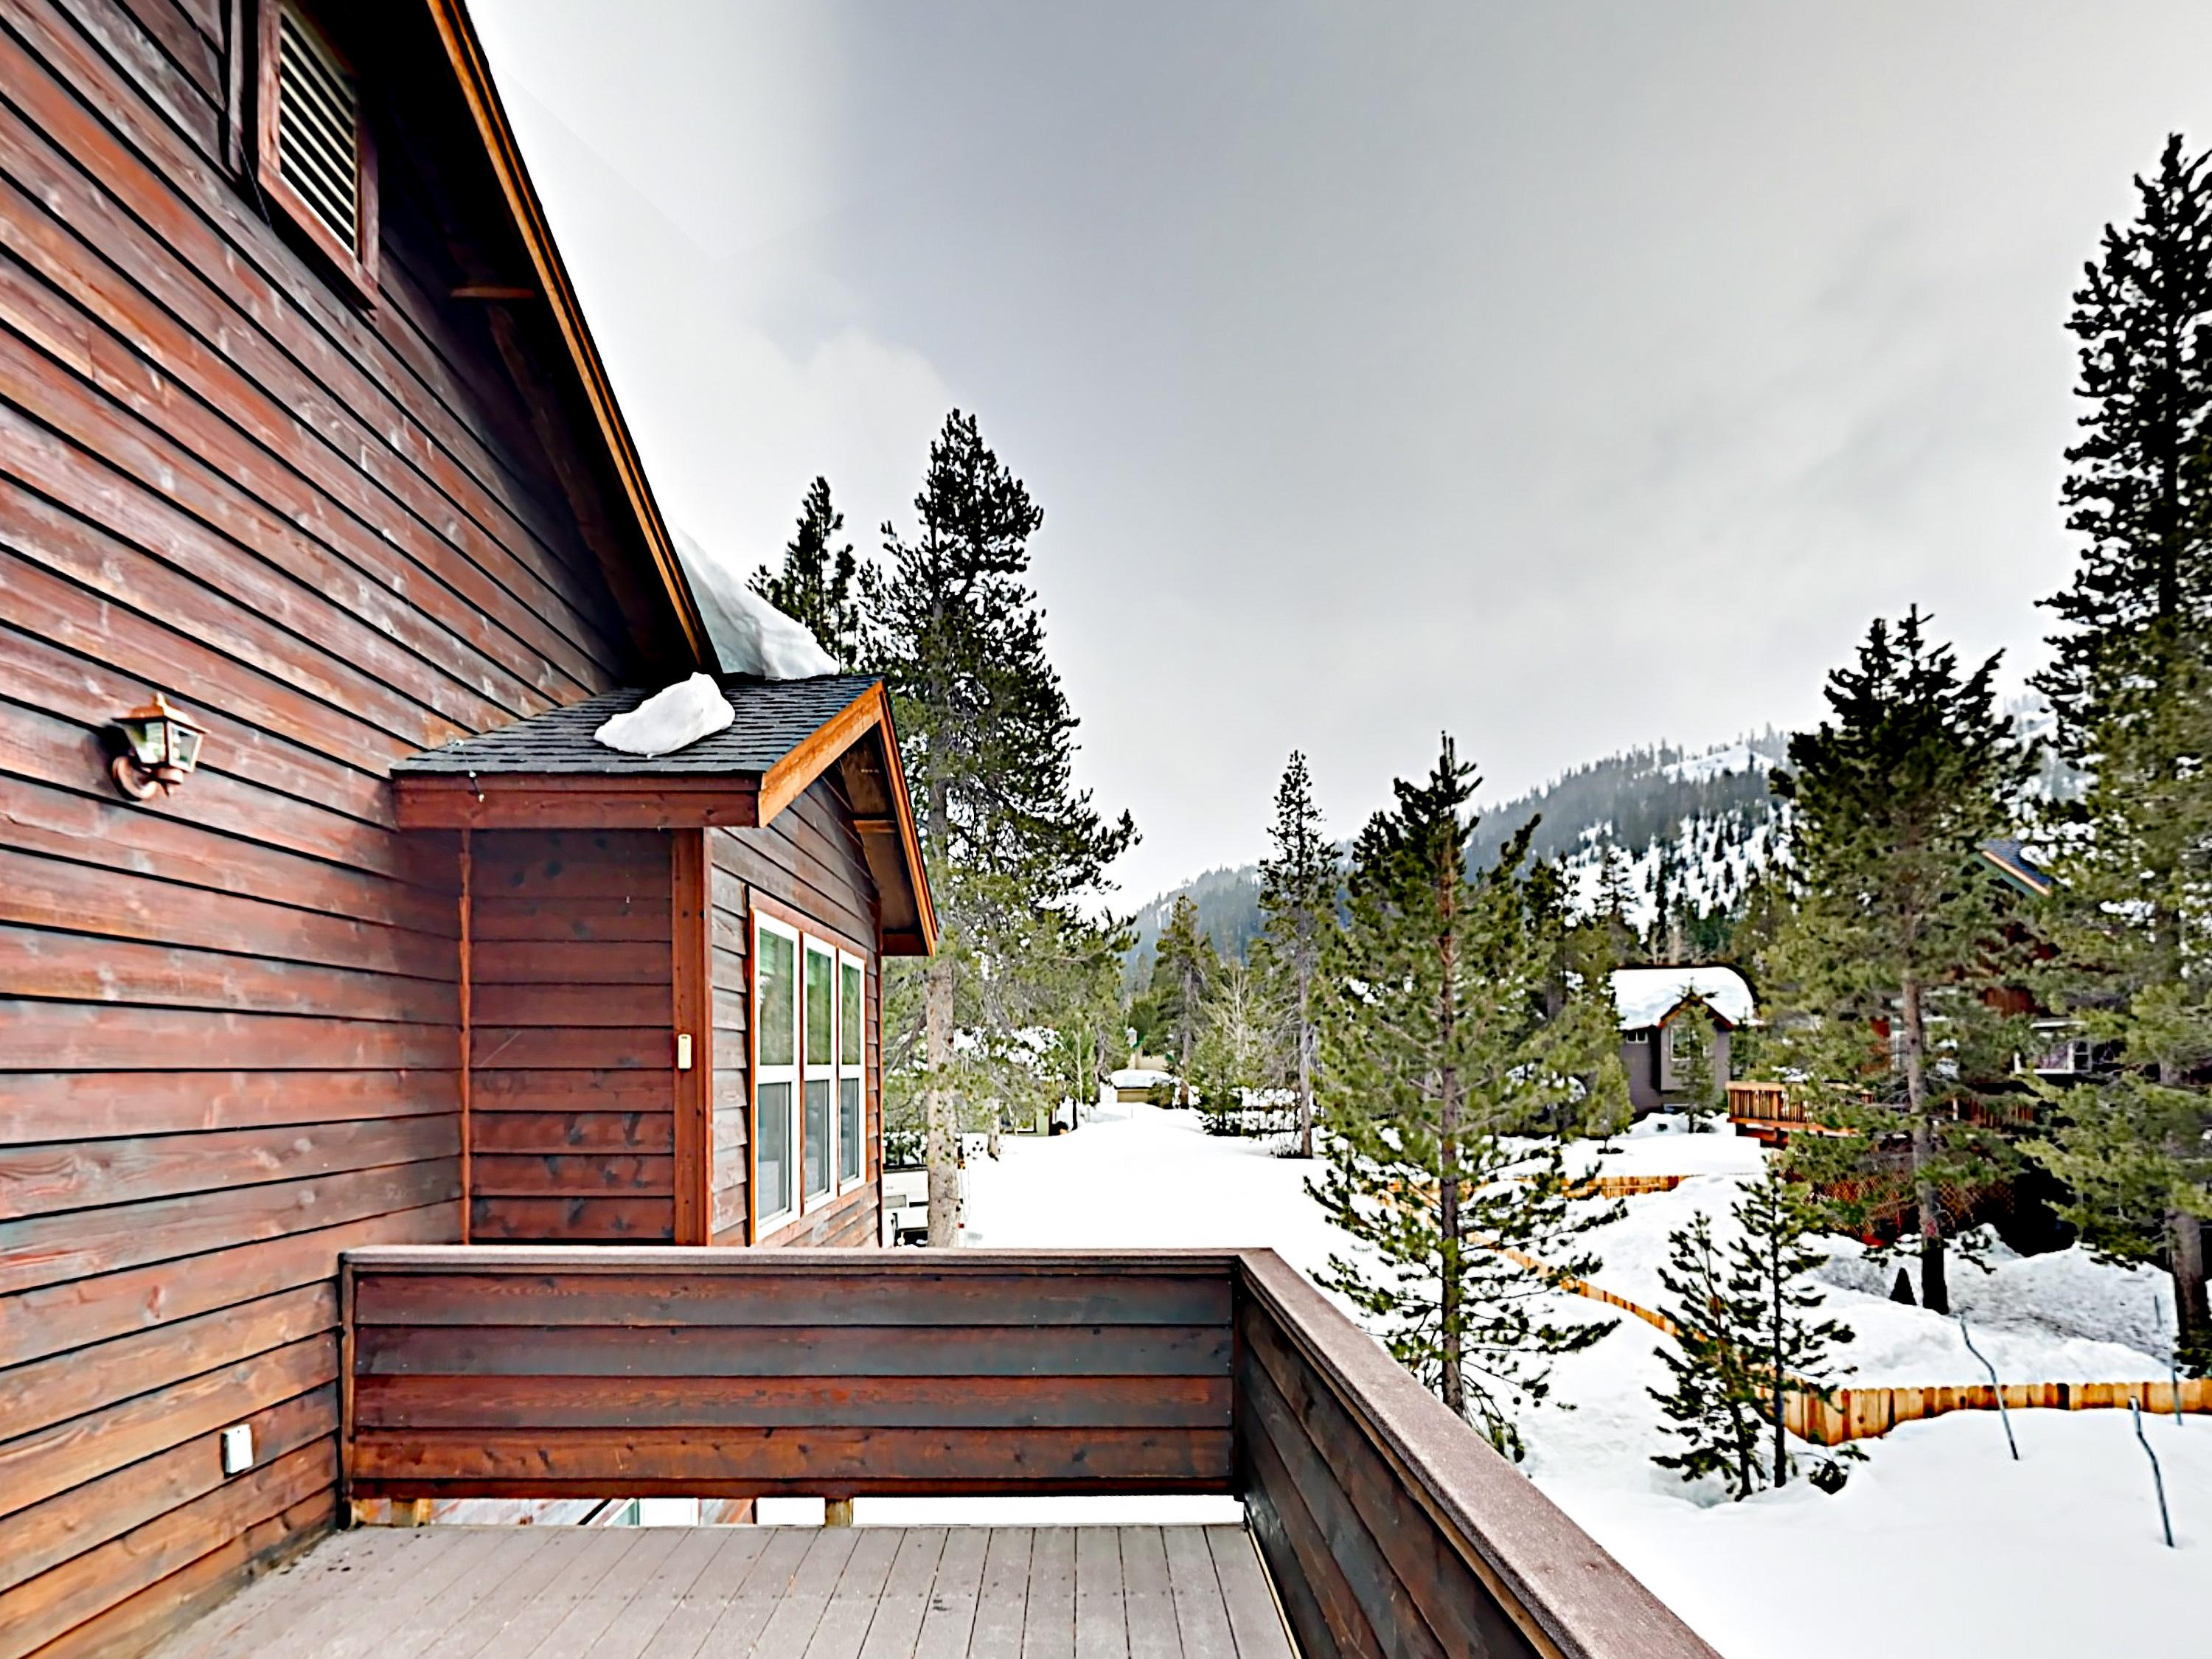 Property Image 2 - Quiet Mountain Getaway Near Bike Trail